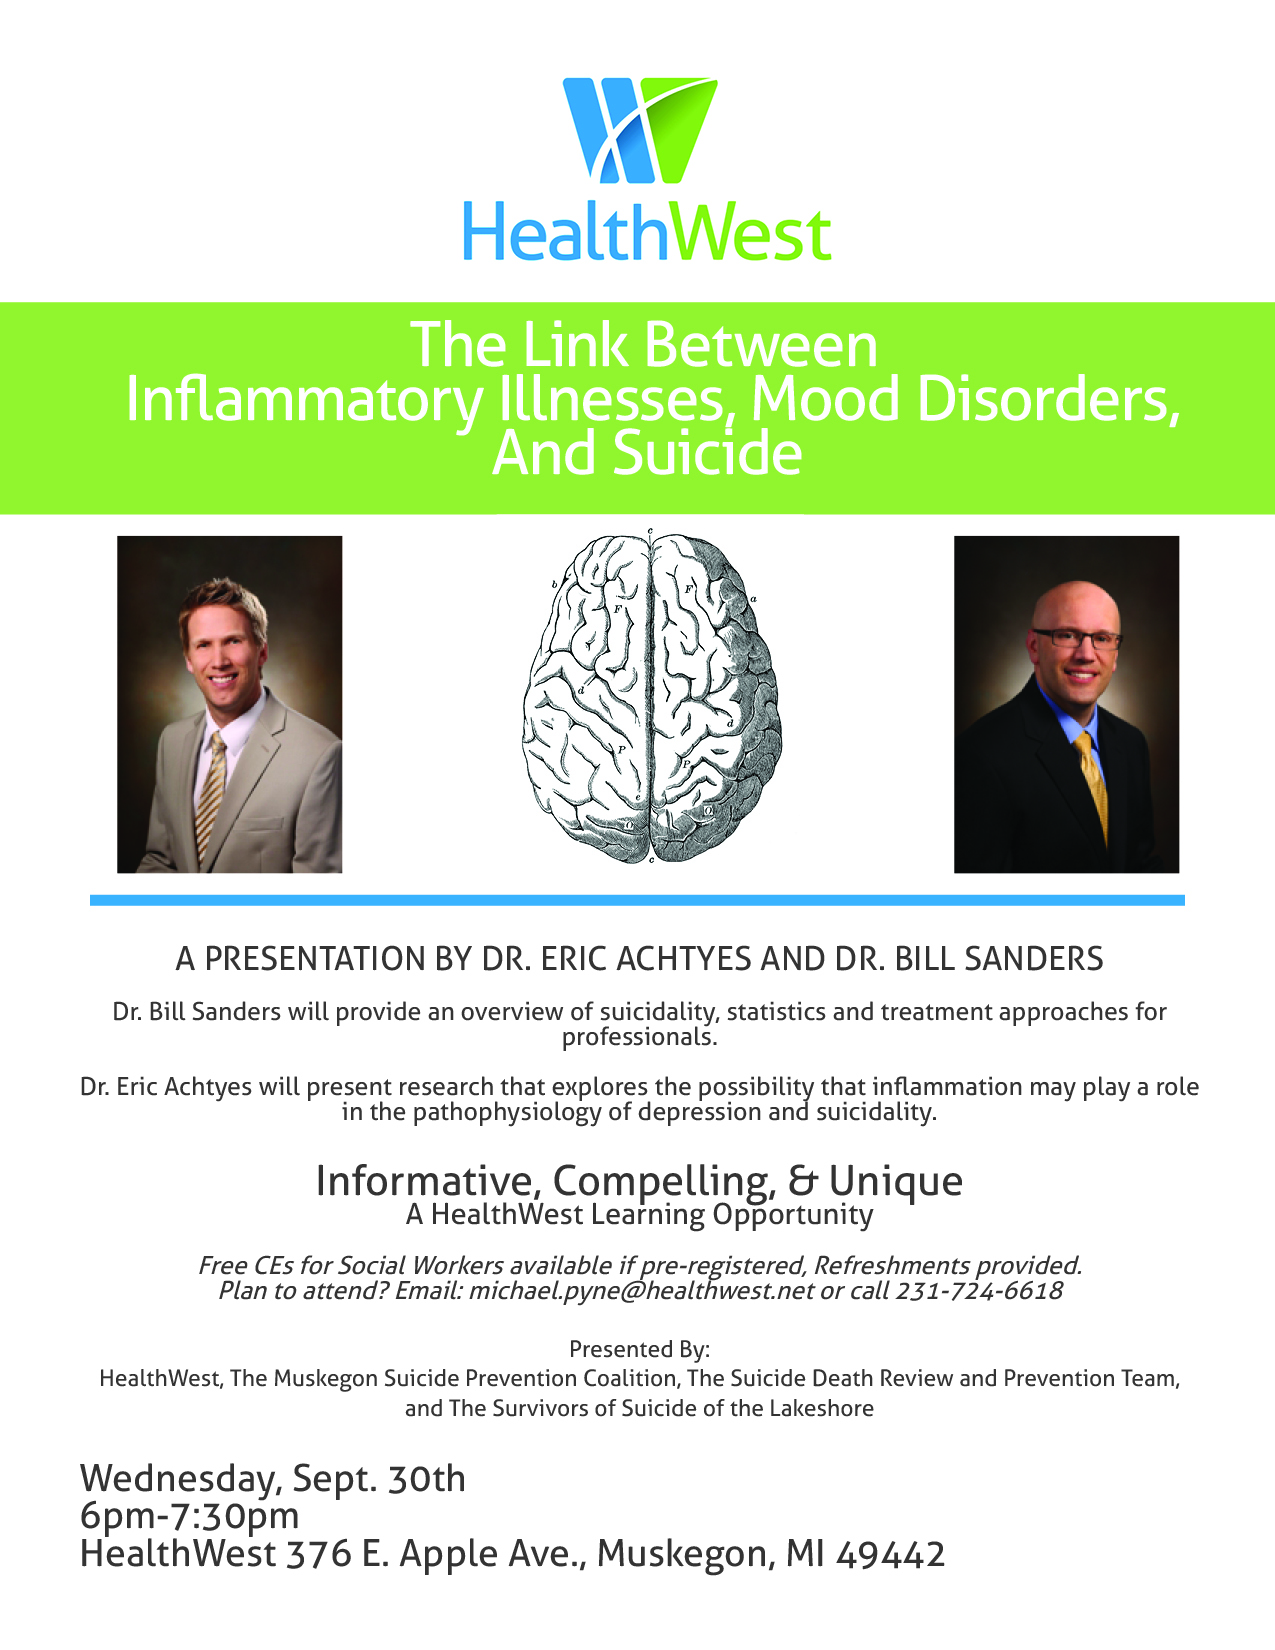 Suicide Research Presentation Inflammatory Illnesses and